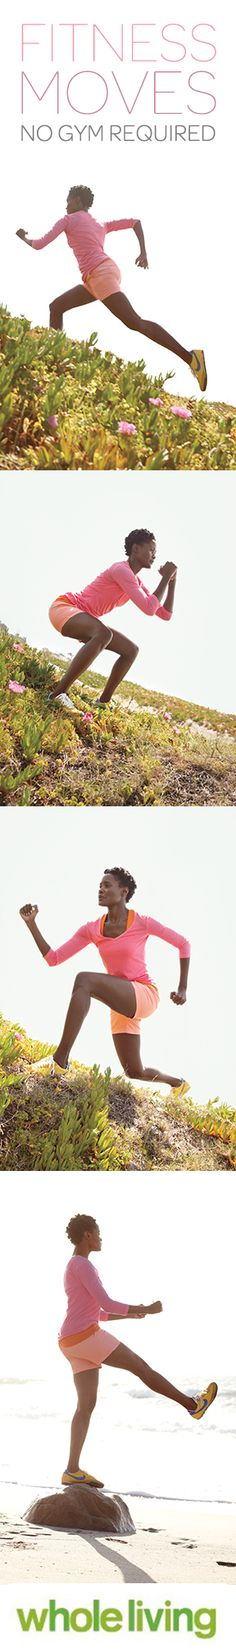 Outdoor Fitness Moves: No Gym Required, Wholeliving.com